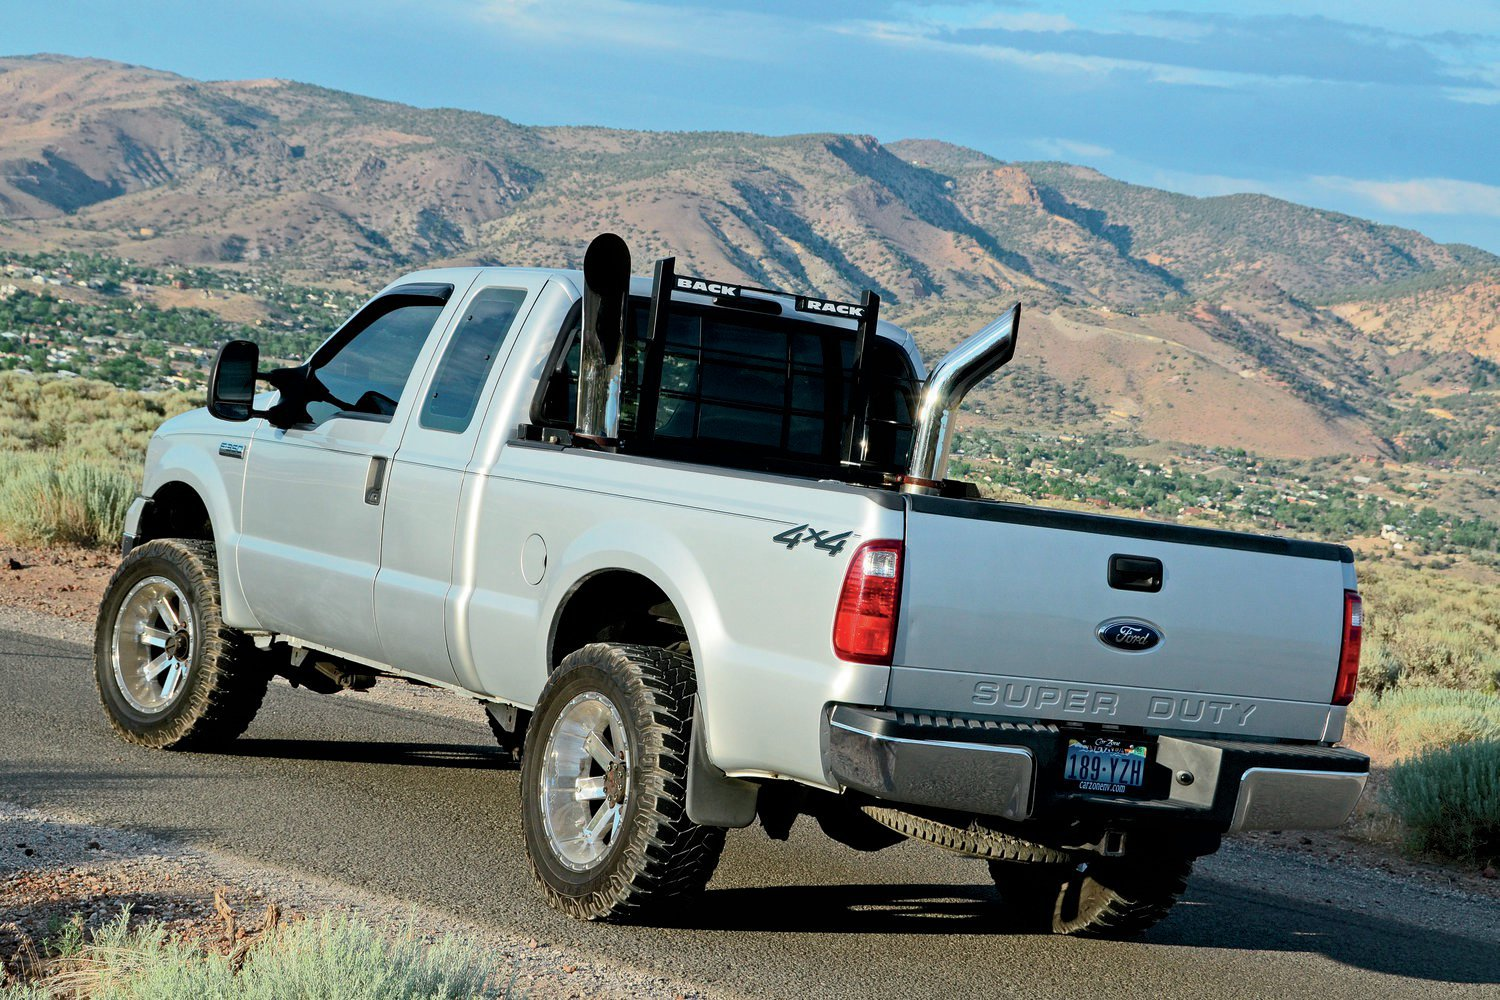 2000 ford f 350 super duty image 9